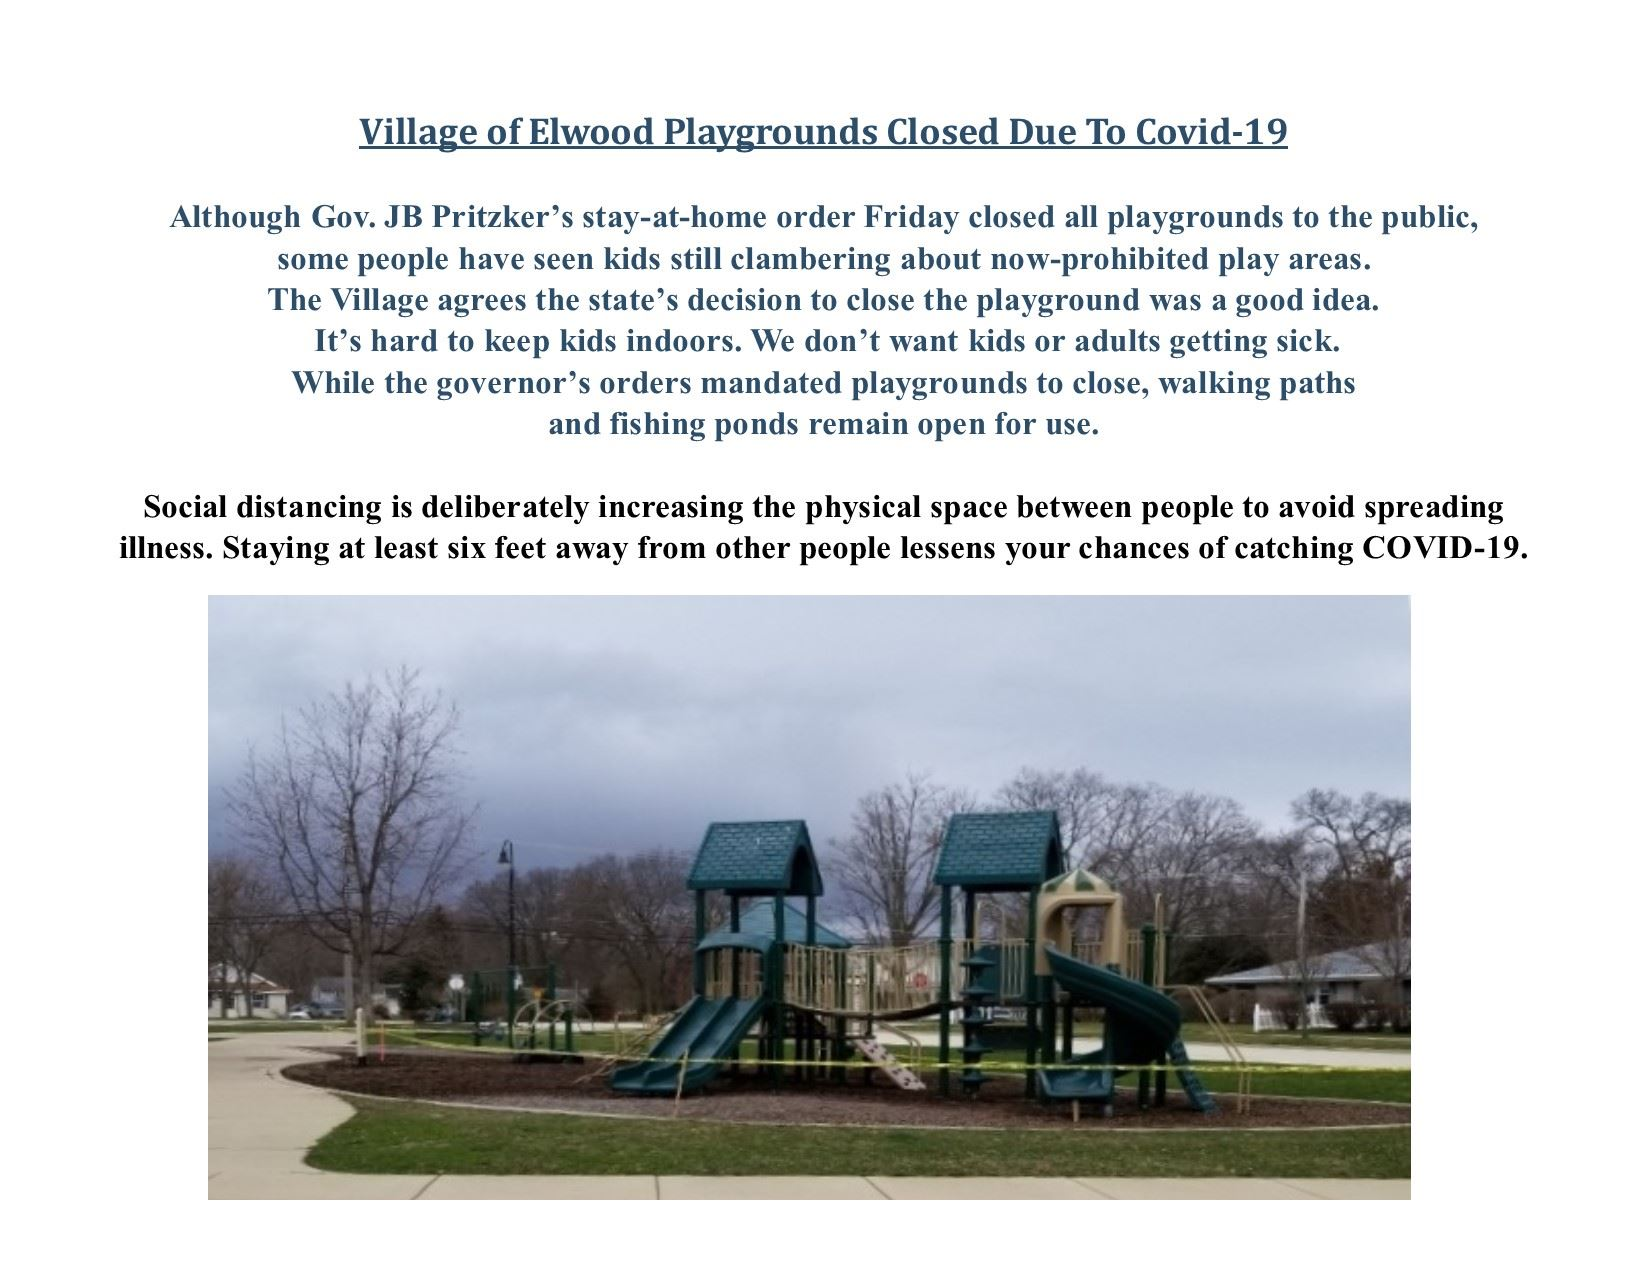 Village Playgrounds Closed Due To COVID-19